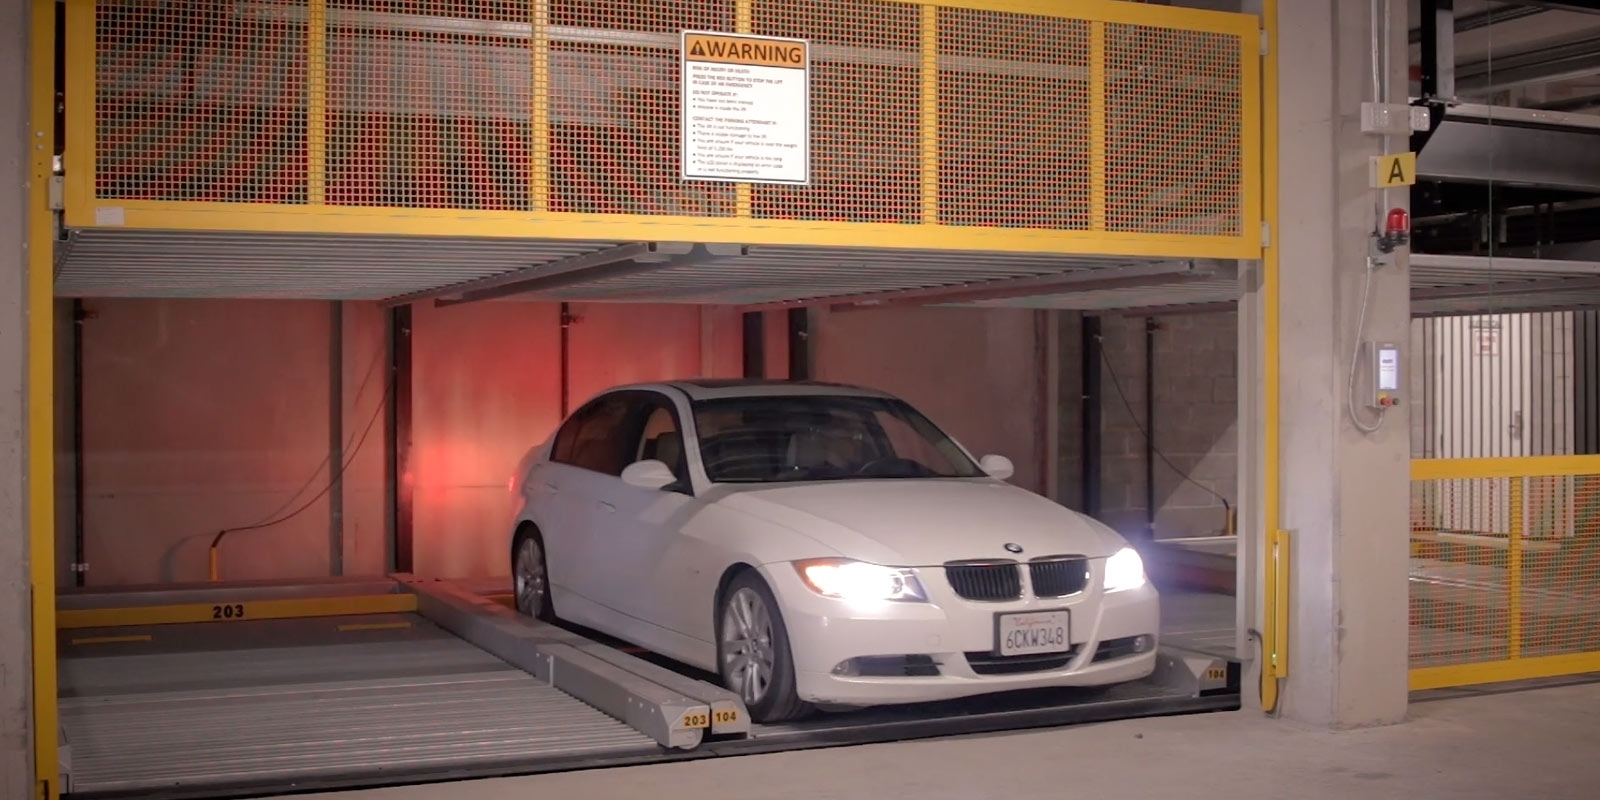 Garage Car Lift For Storage Loft It Garage Wall Storage Lift System Madison Art Center Design